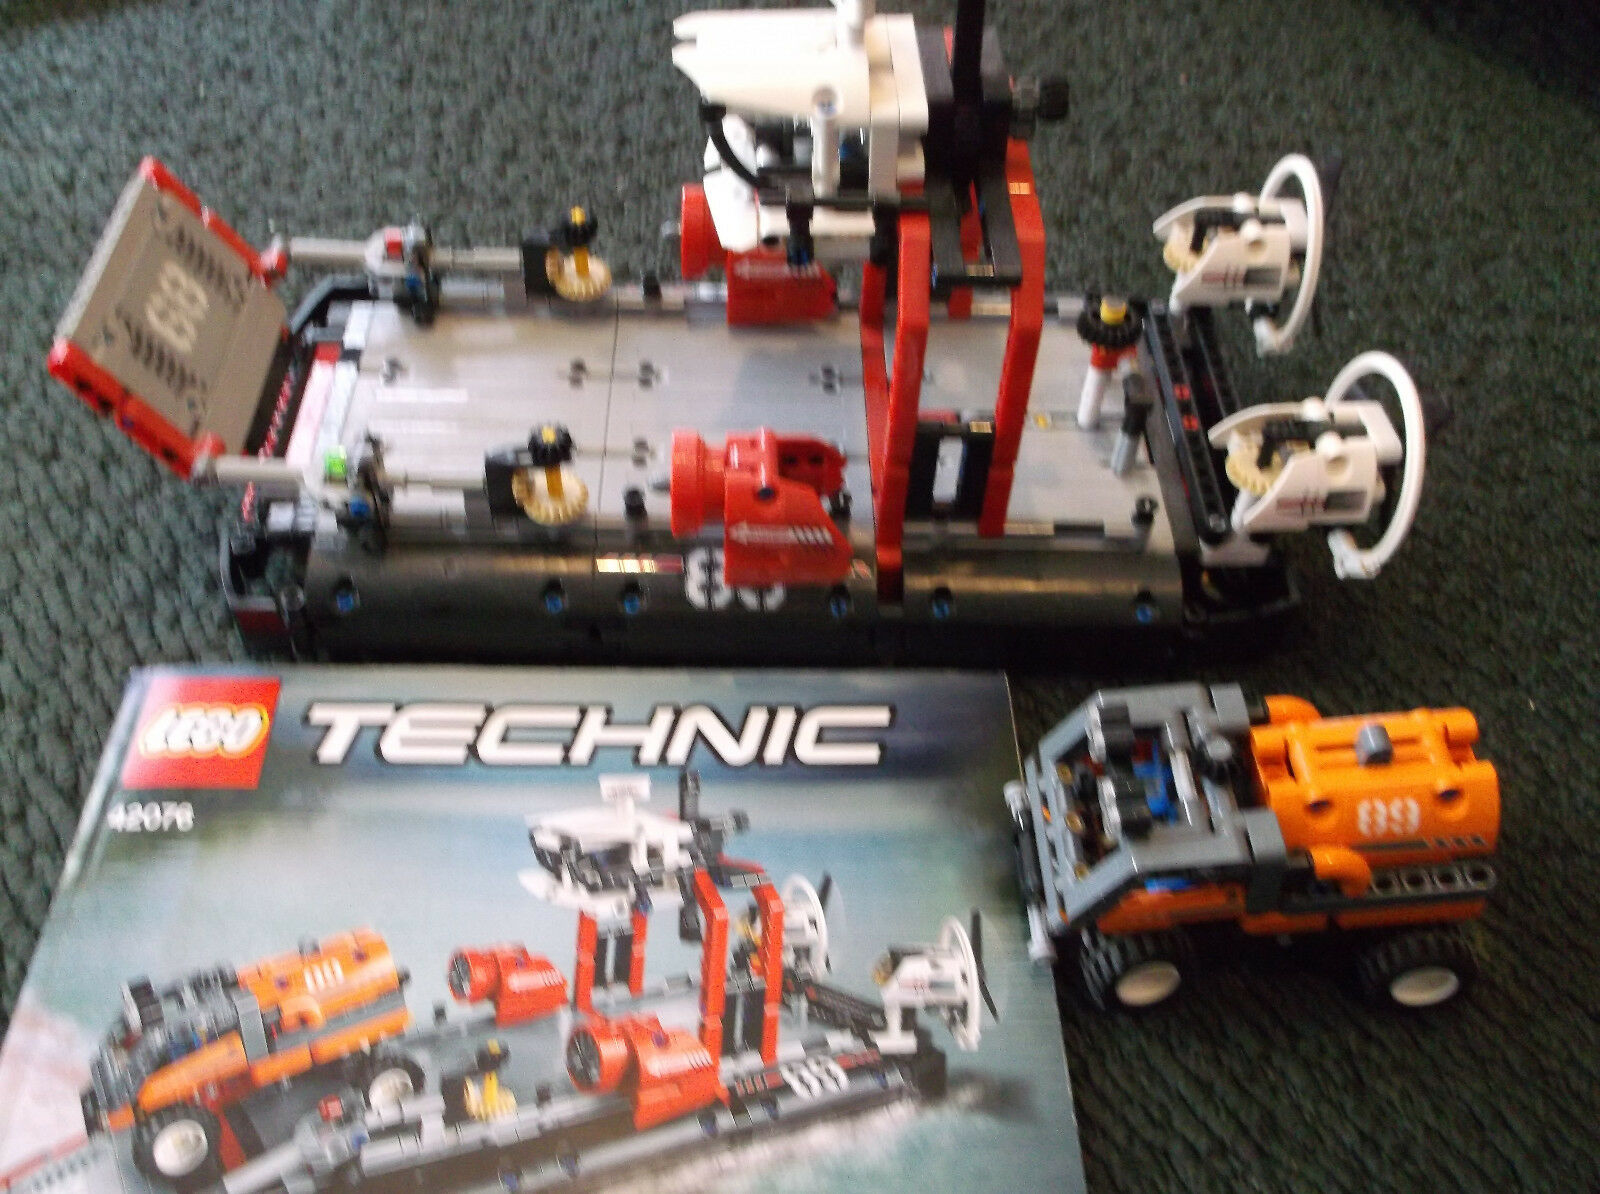 LEGO Technic Hovercraft 2018 (42076) (42076) (42076) - 2 in 1 complete a31ee5